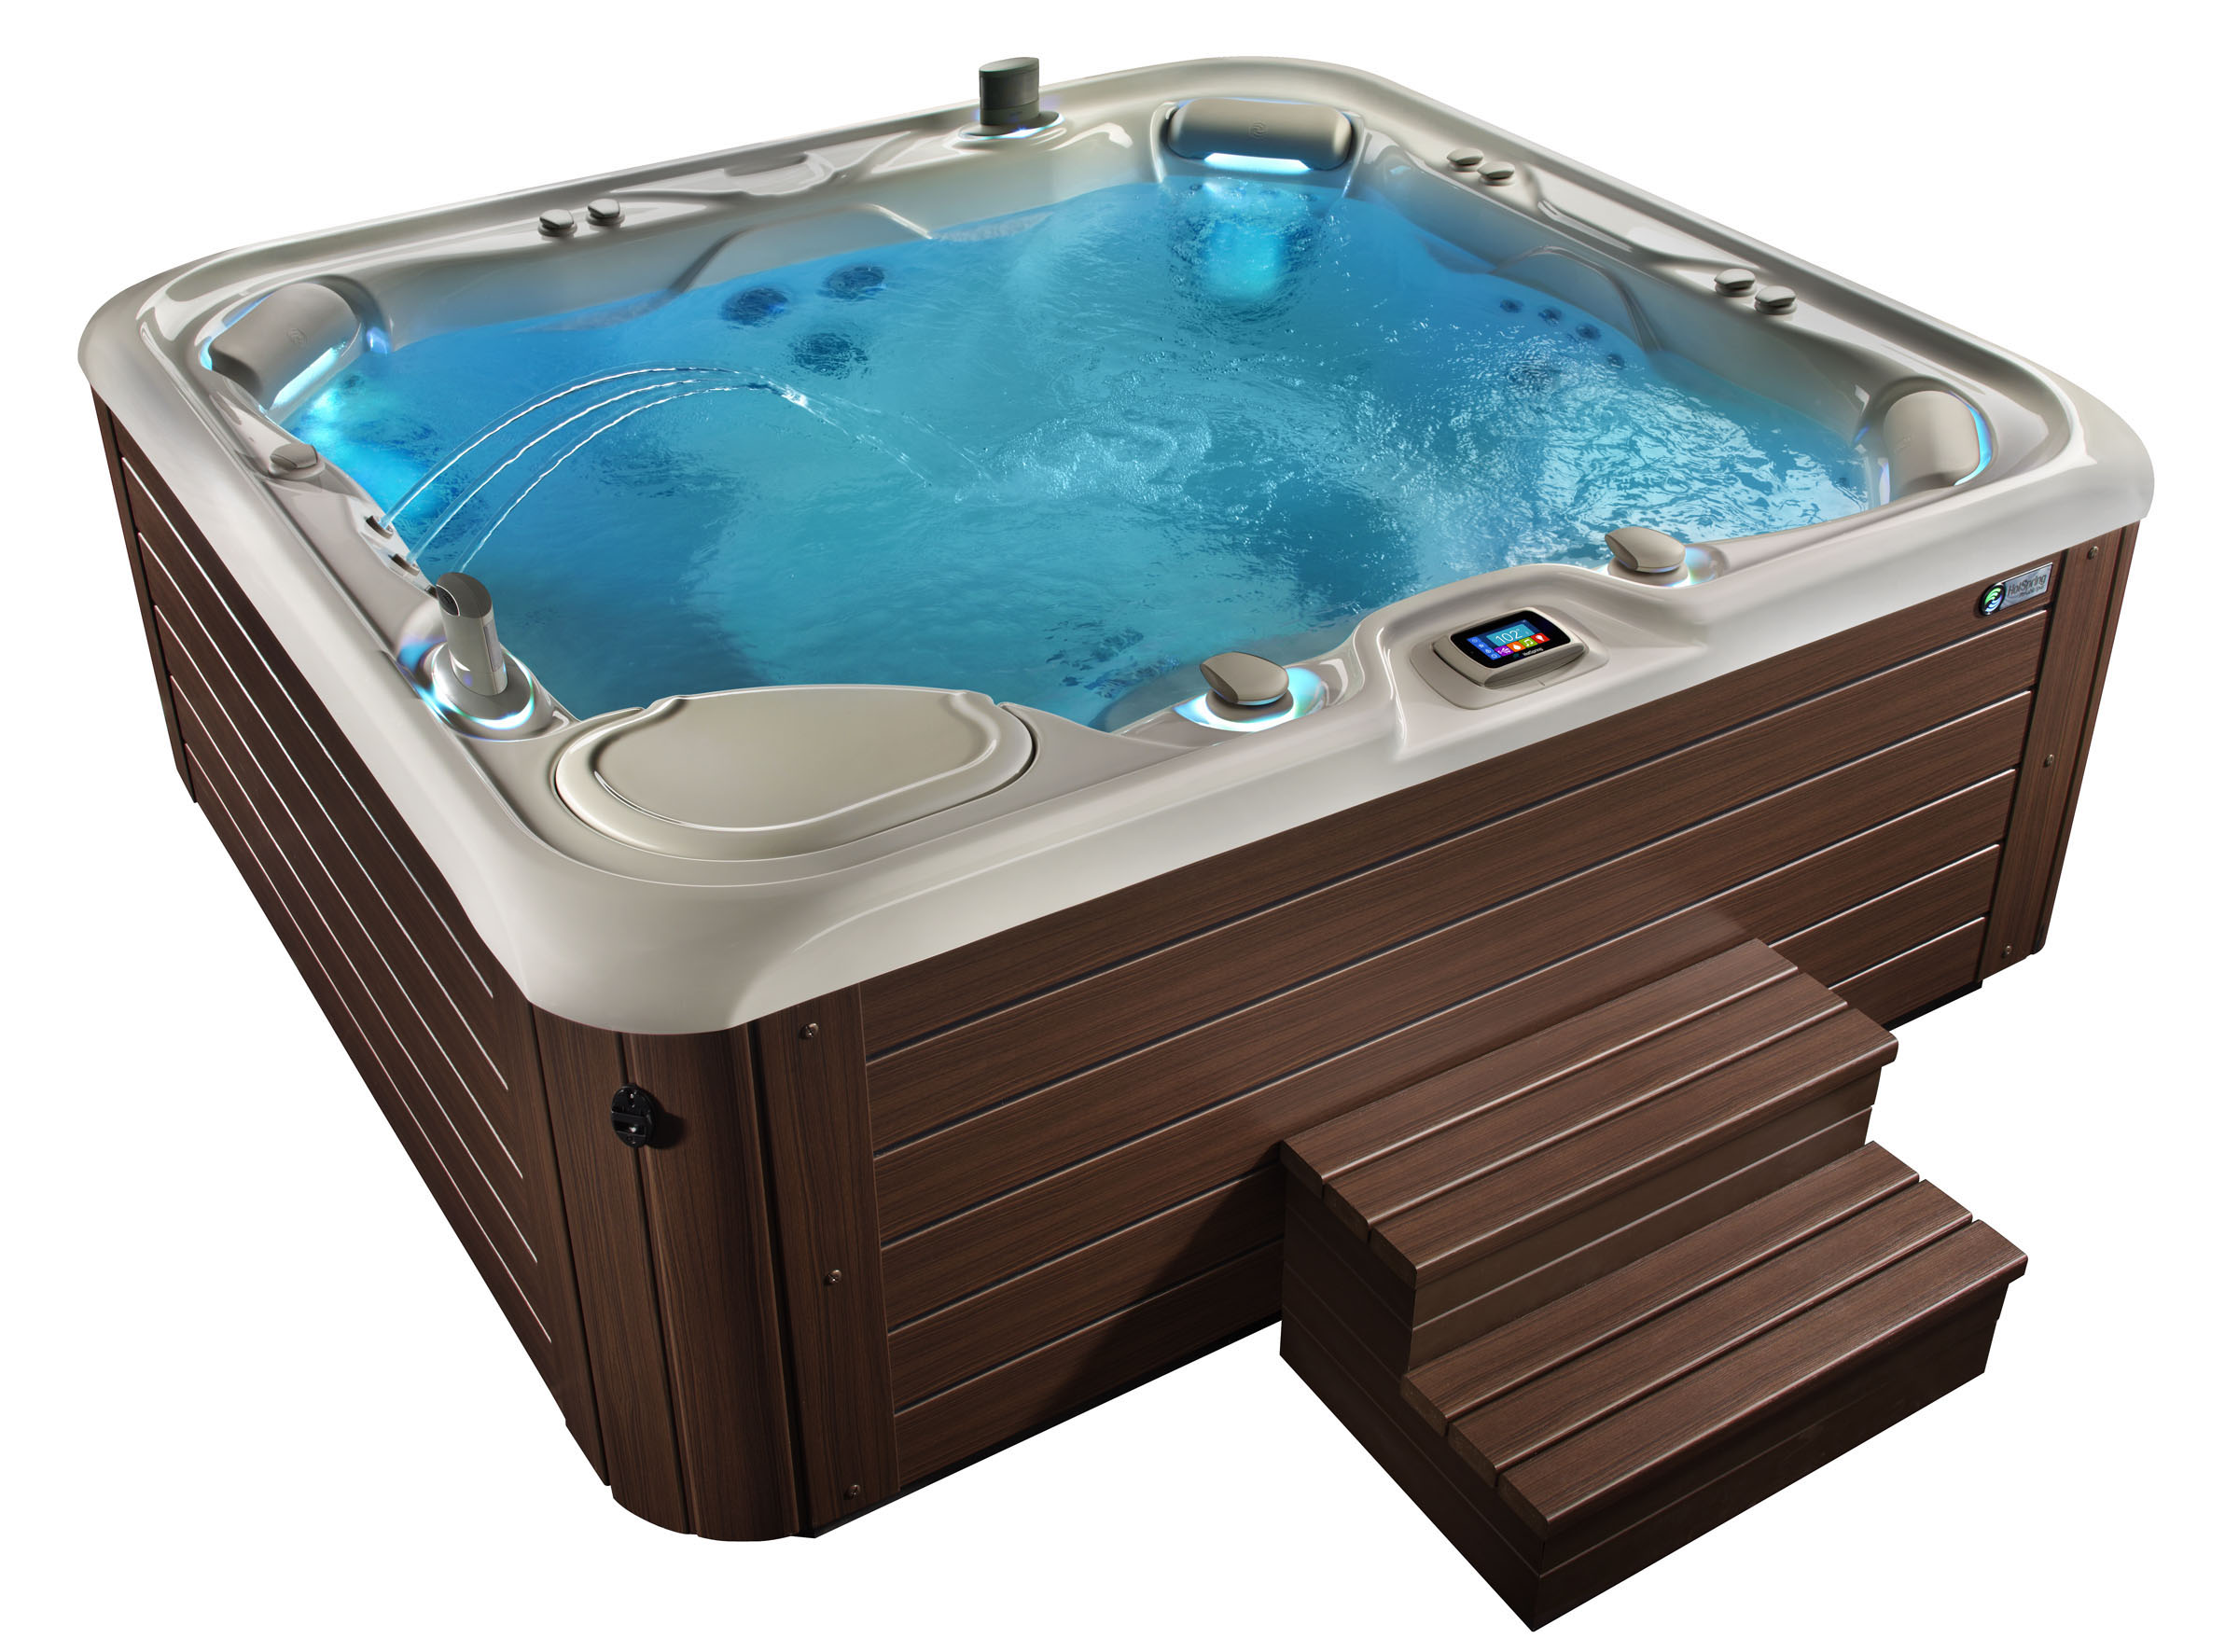 Aria | In the Highlife Series of Hot Tubs by Hot Spring